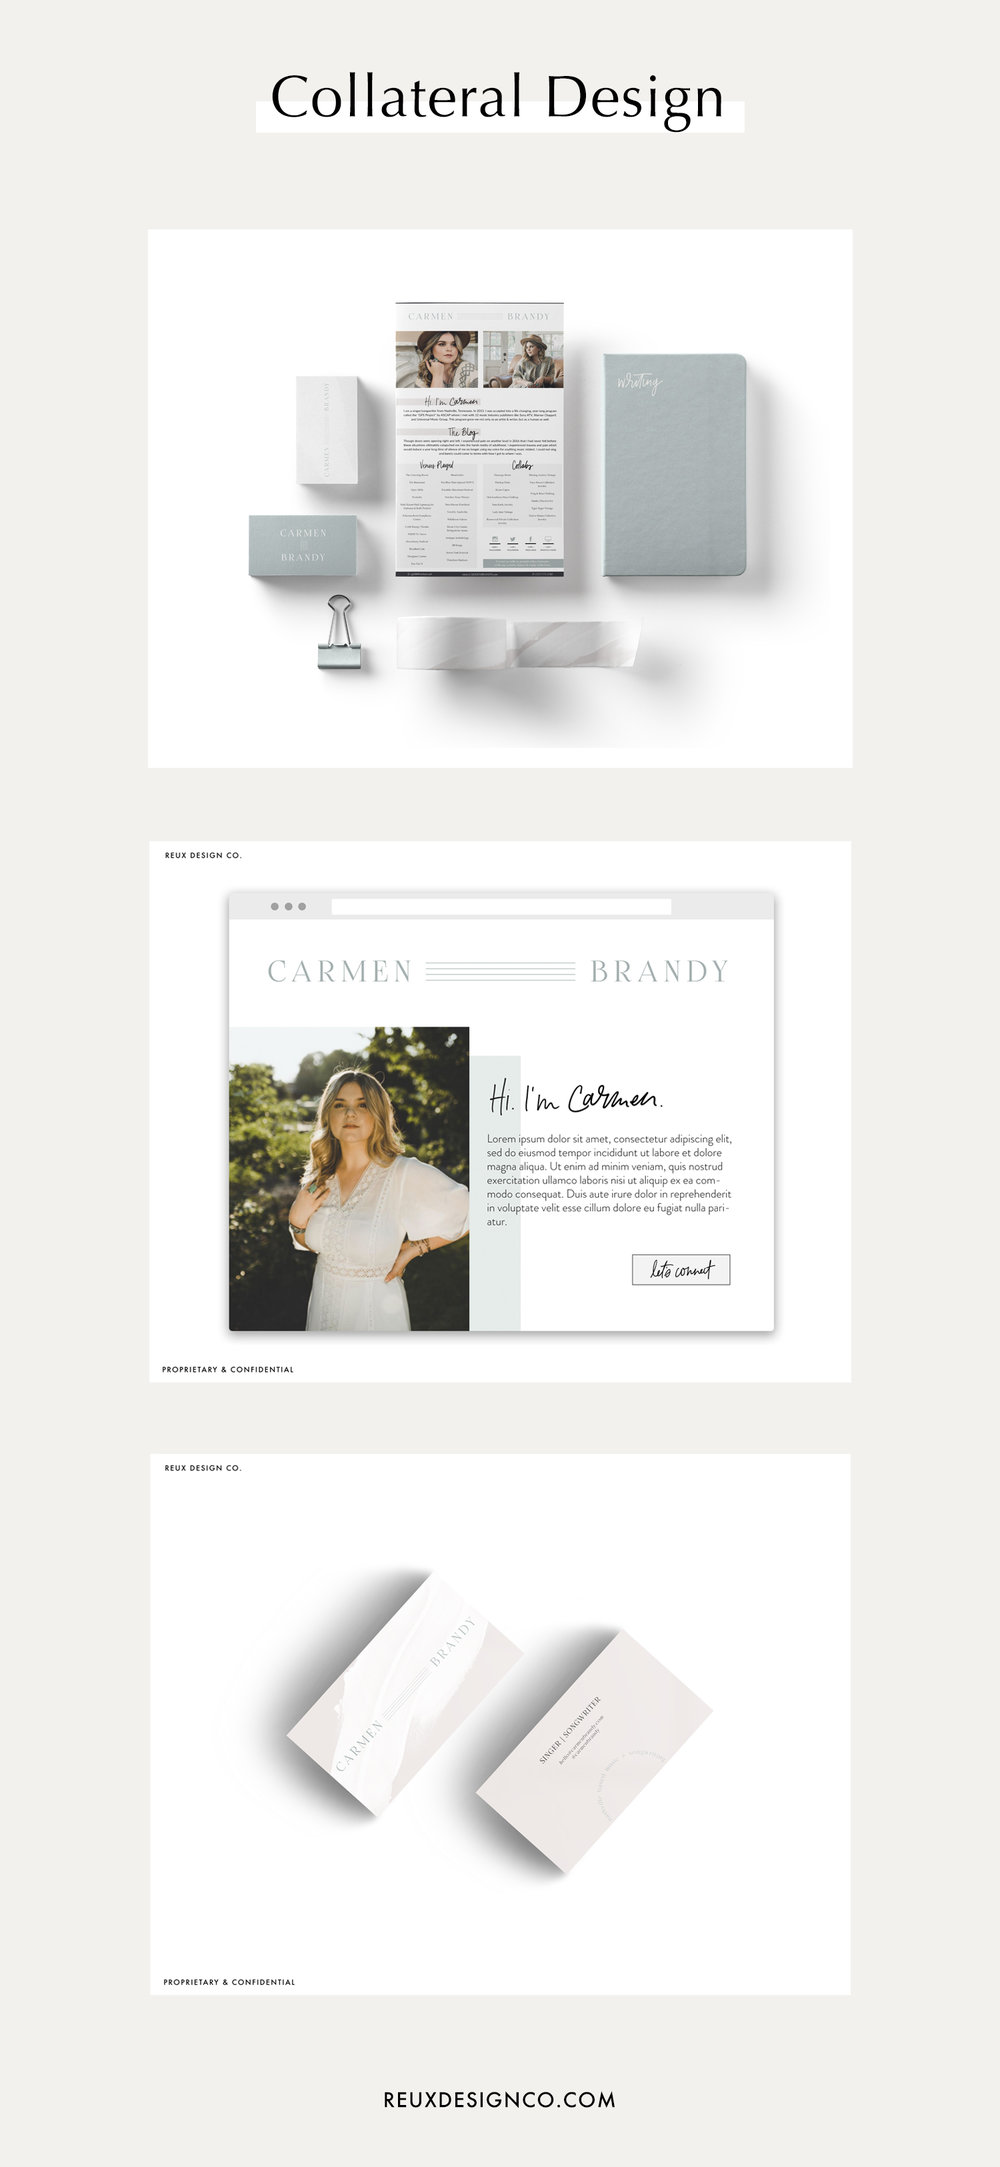 Holistic Brand Design Process at Reux Design Co. - part three: collateral and paper goods design including business cards, stationery, templates, newsletter design and more to create a well rounded brand